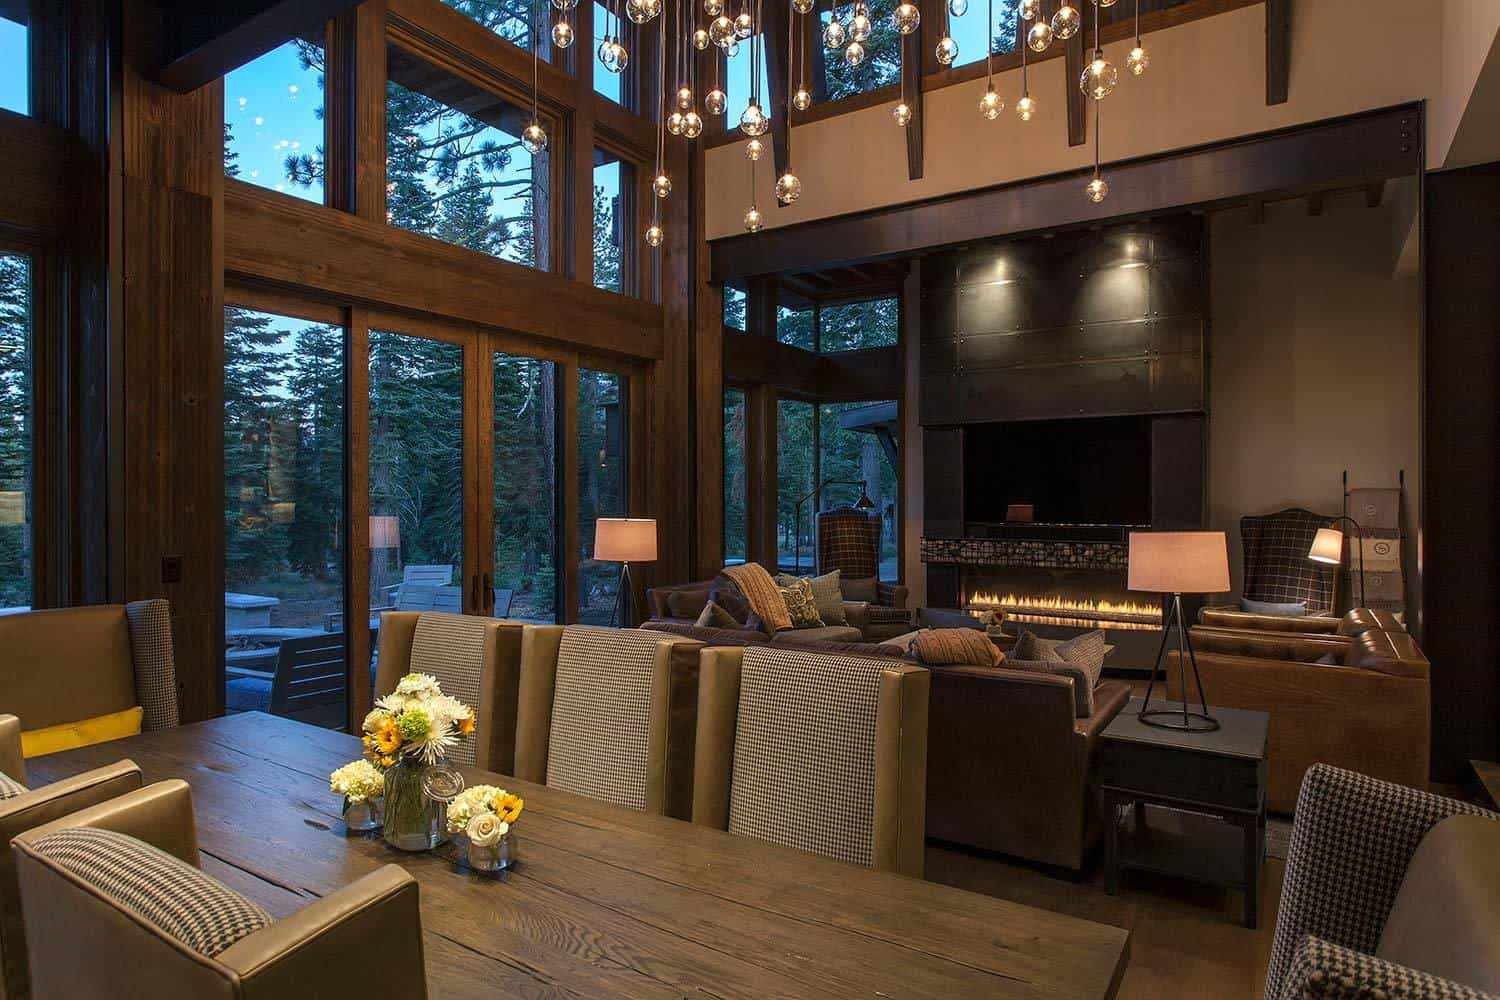 Lake Tahoe getaway features contemporary barn aesthetic on Interior:ybeqvfpgwcq= Modern House Ideas  id=24502